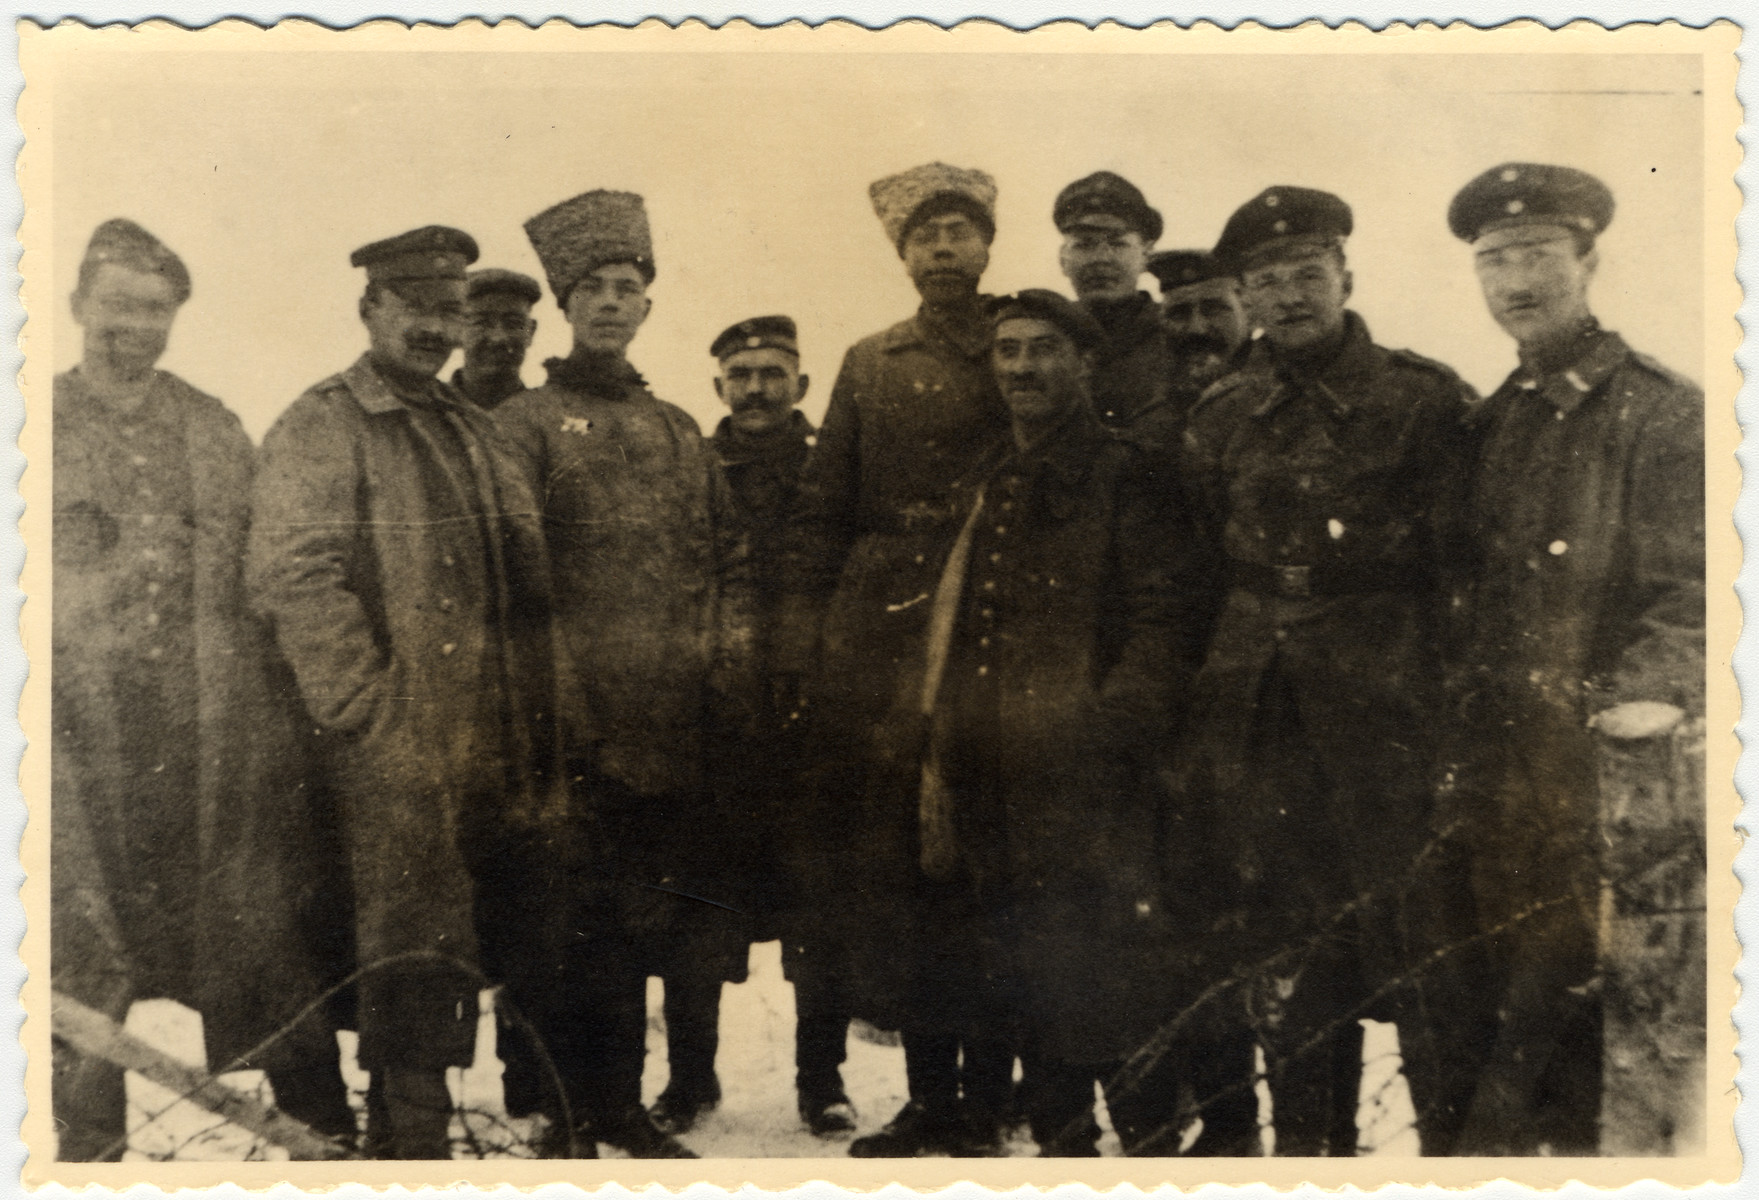 German and Russian soldiers pose together after the end of hostilities on the eastern front during World War I.  Among those pictured is Erwin Heilbronner (far right).